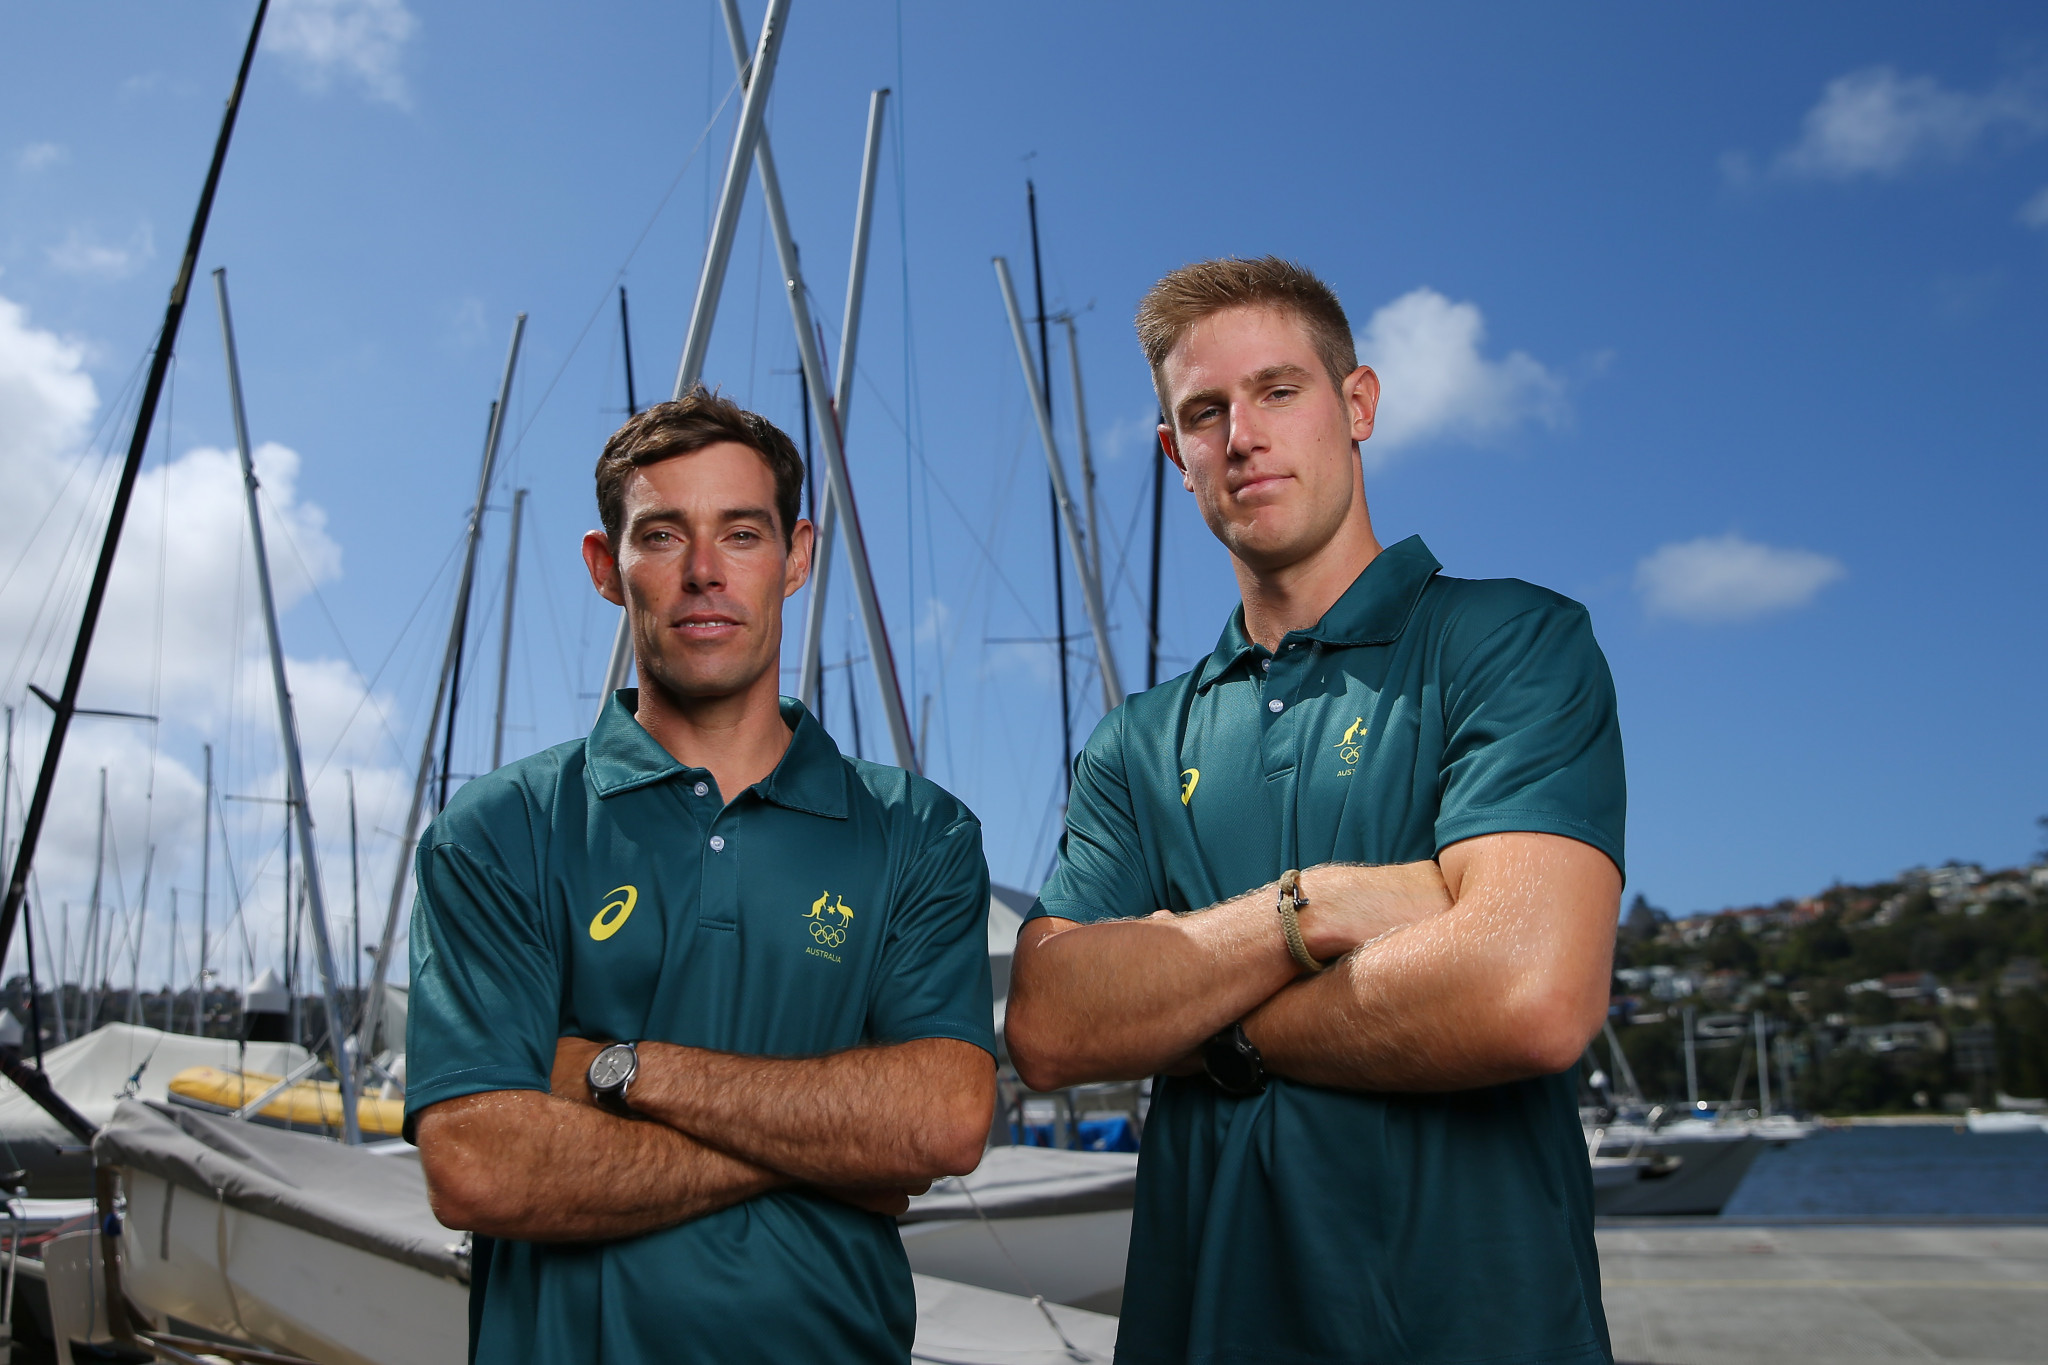 Mathew Belcher, left, and Matt Wearn are among the first three athletes selected for Australia at Tokyo 2020 ©Getty Images